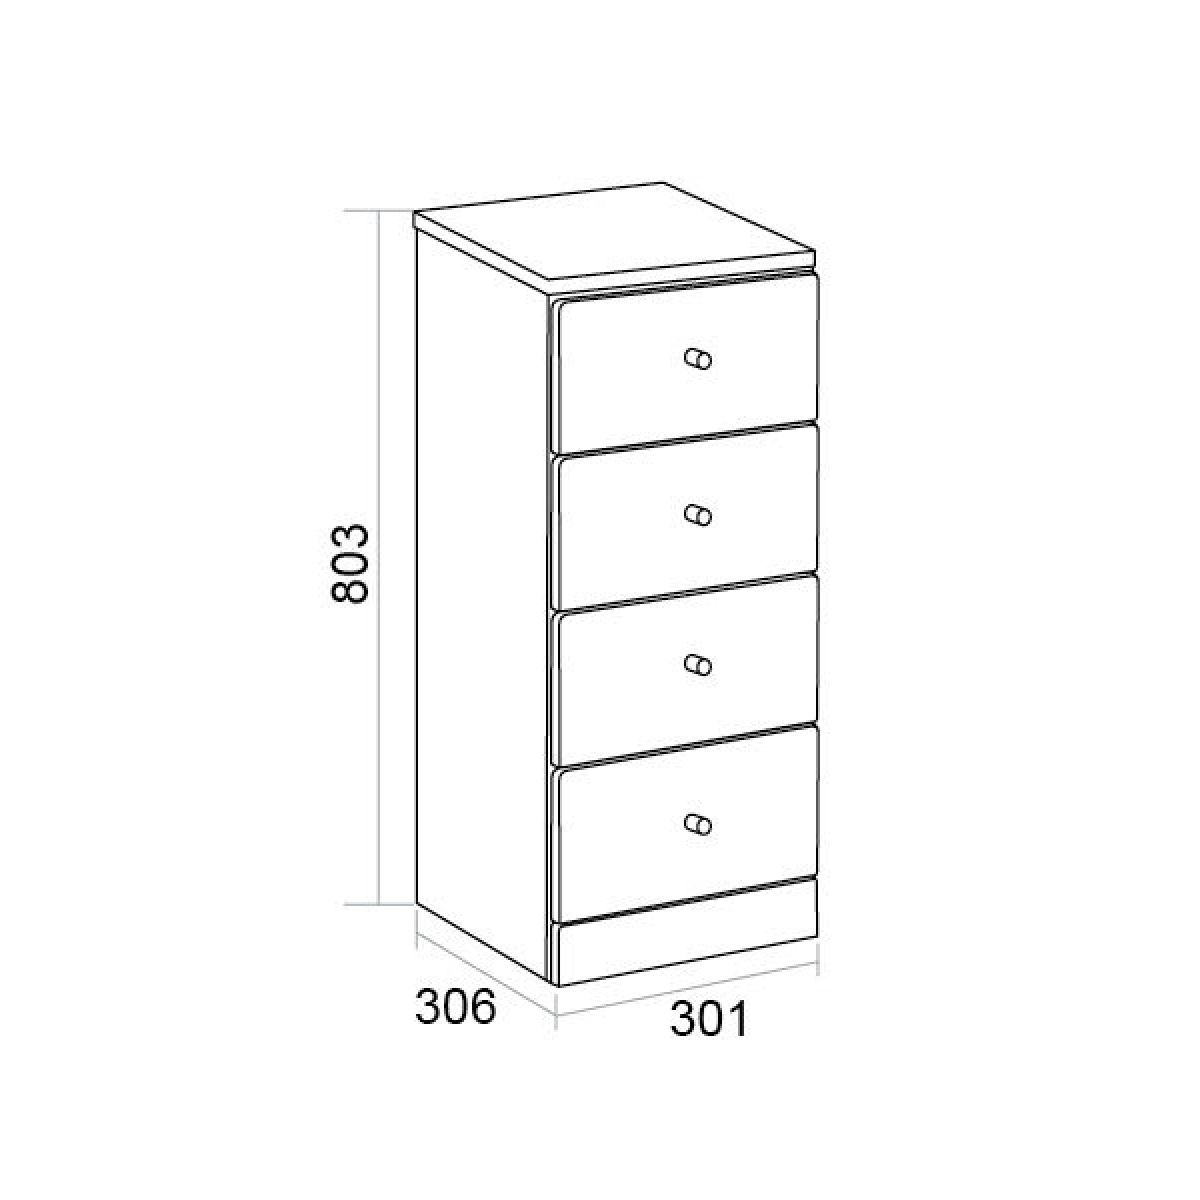 Ikoma White Gloss 4 Drawer Unit Dimensions